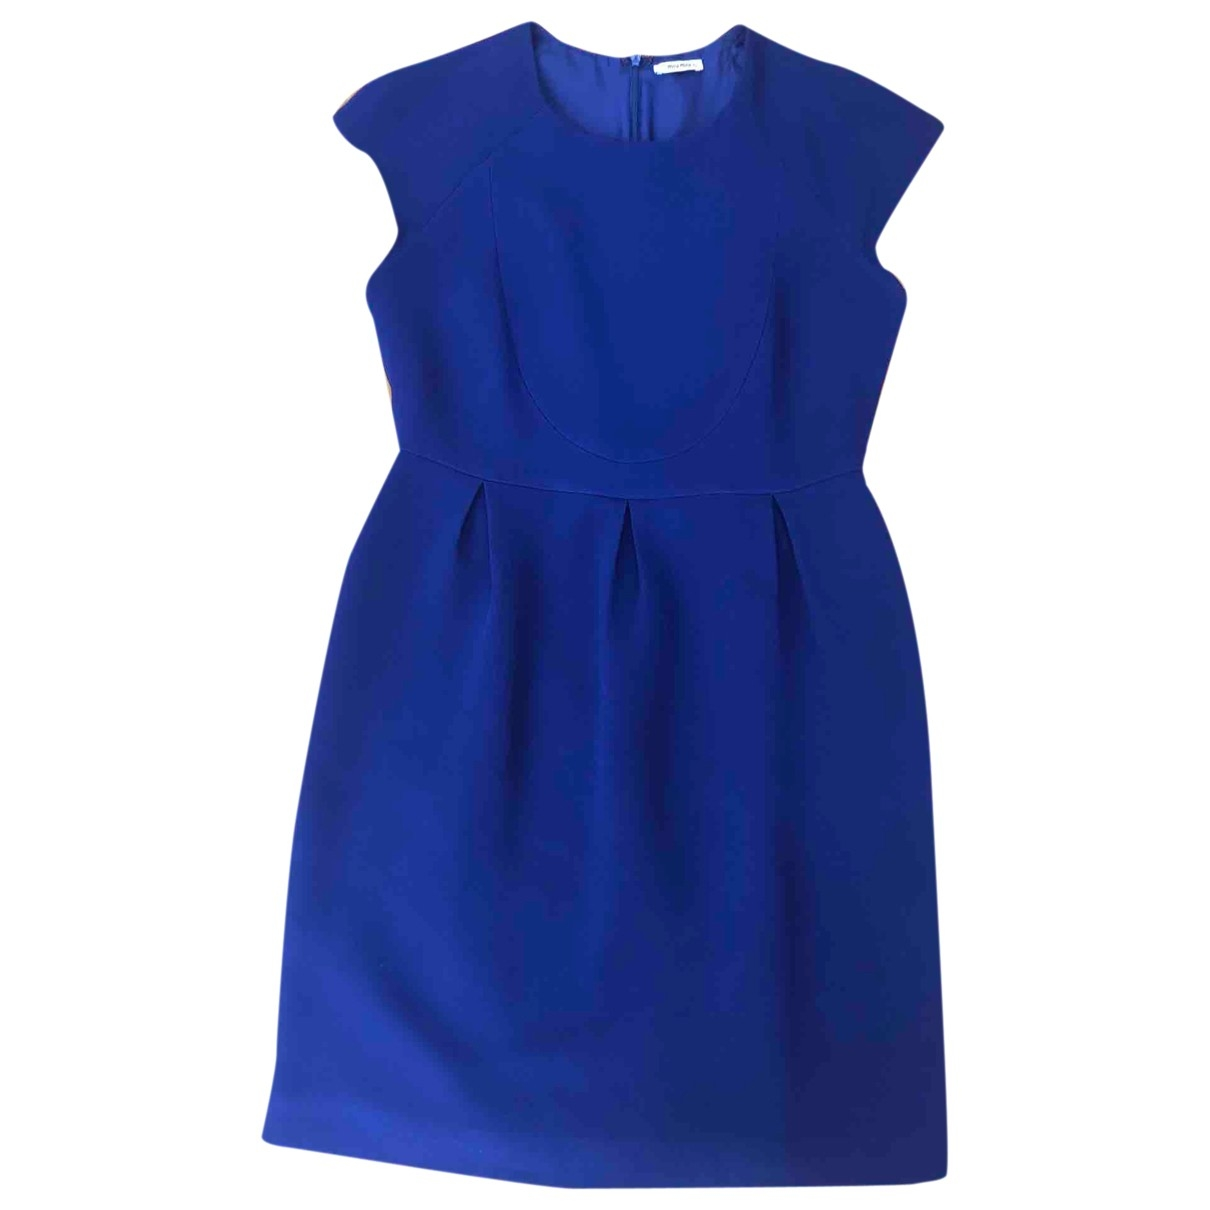 Miu Miu \N Kleid in  Blau Synthetik